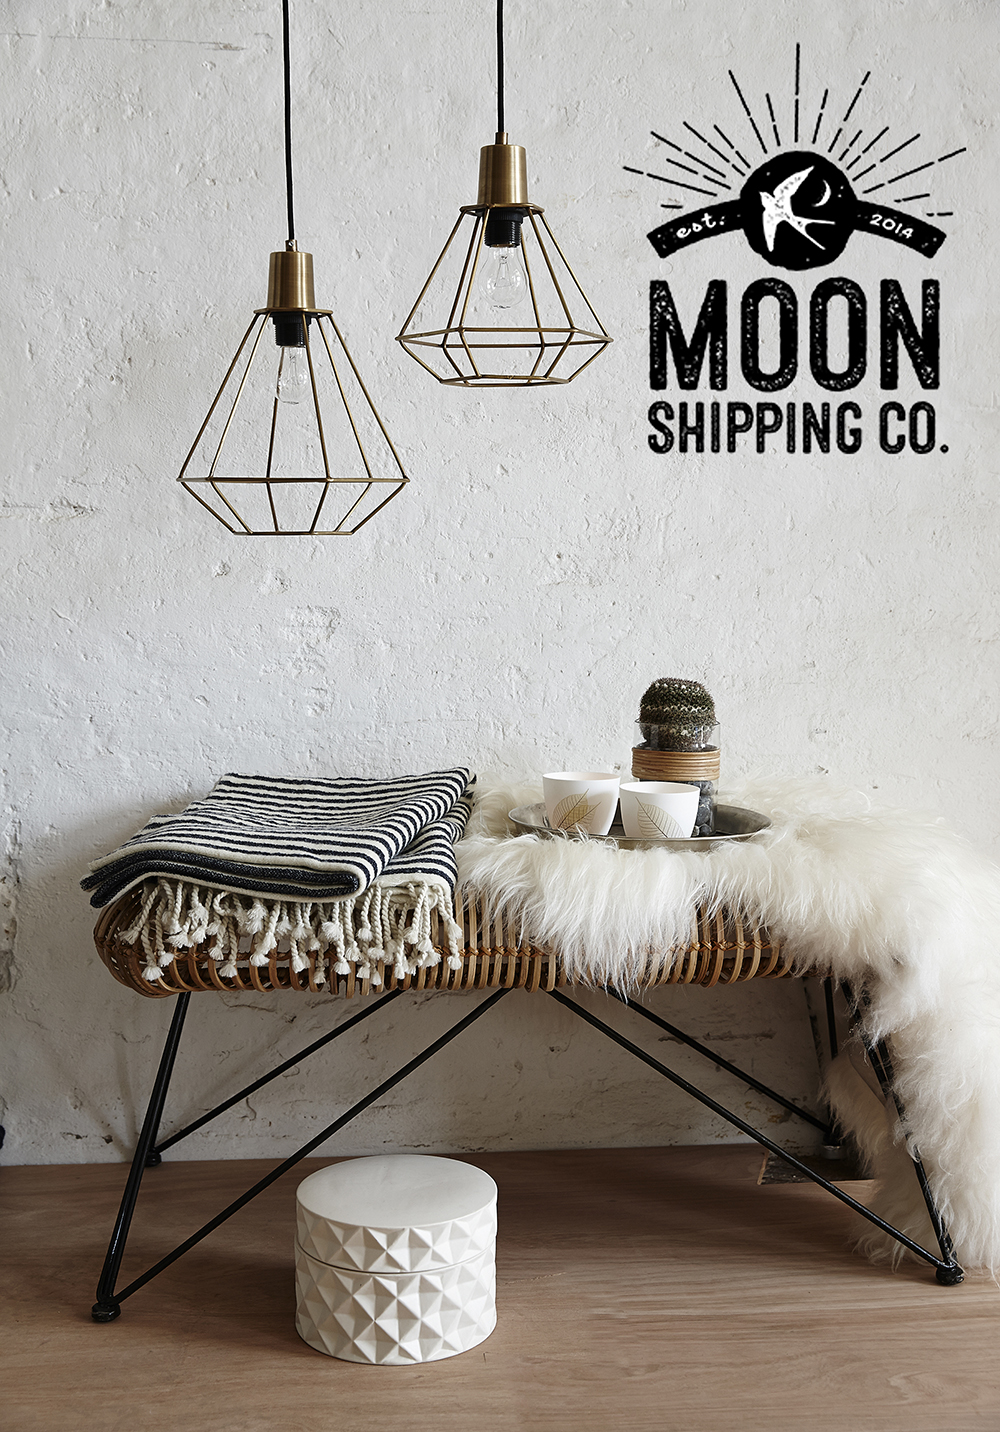 Moon Shipping Company Giveaway